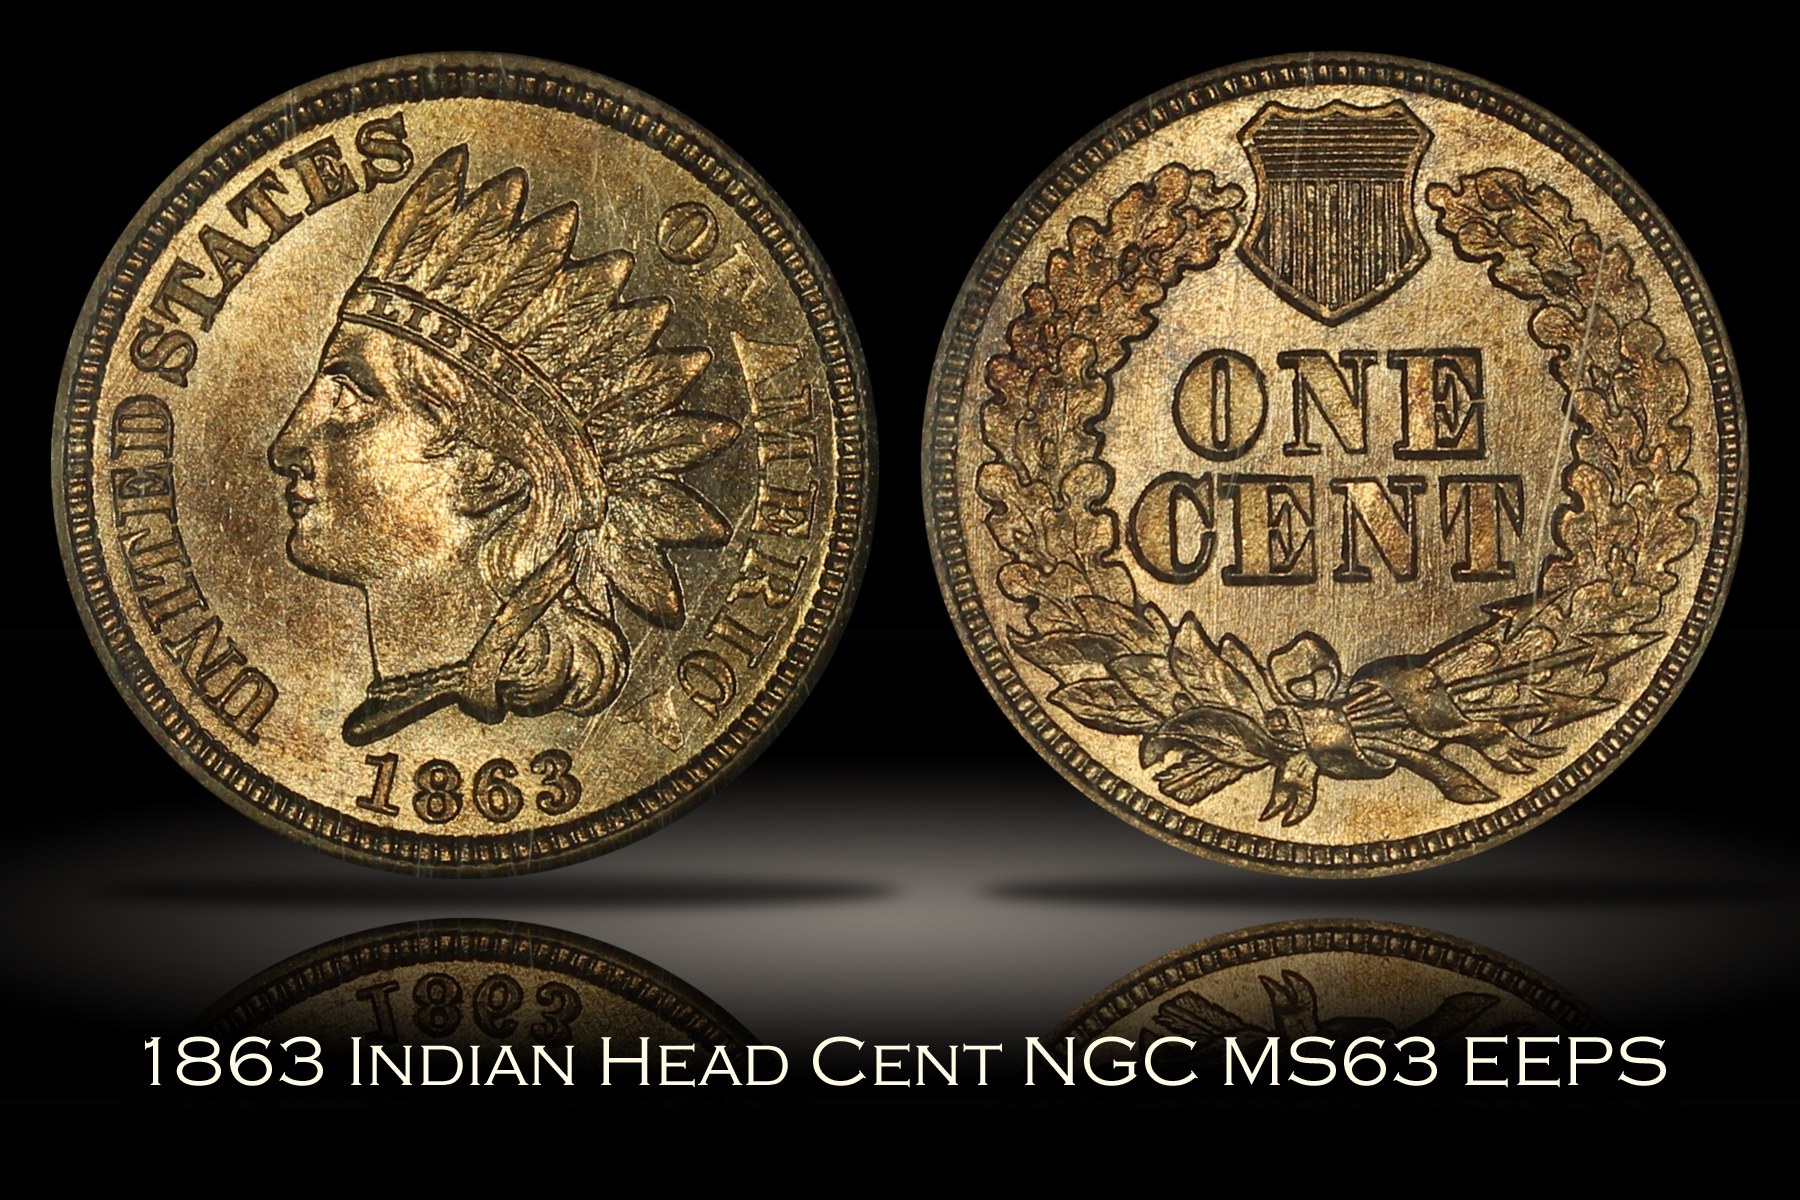 1863 Indian Head Cent NGC MS63 EEPS